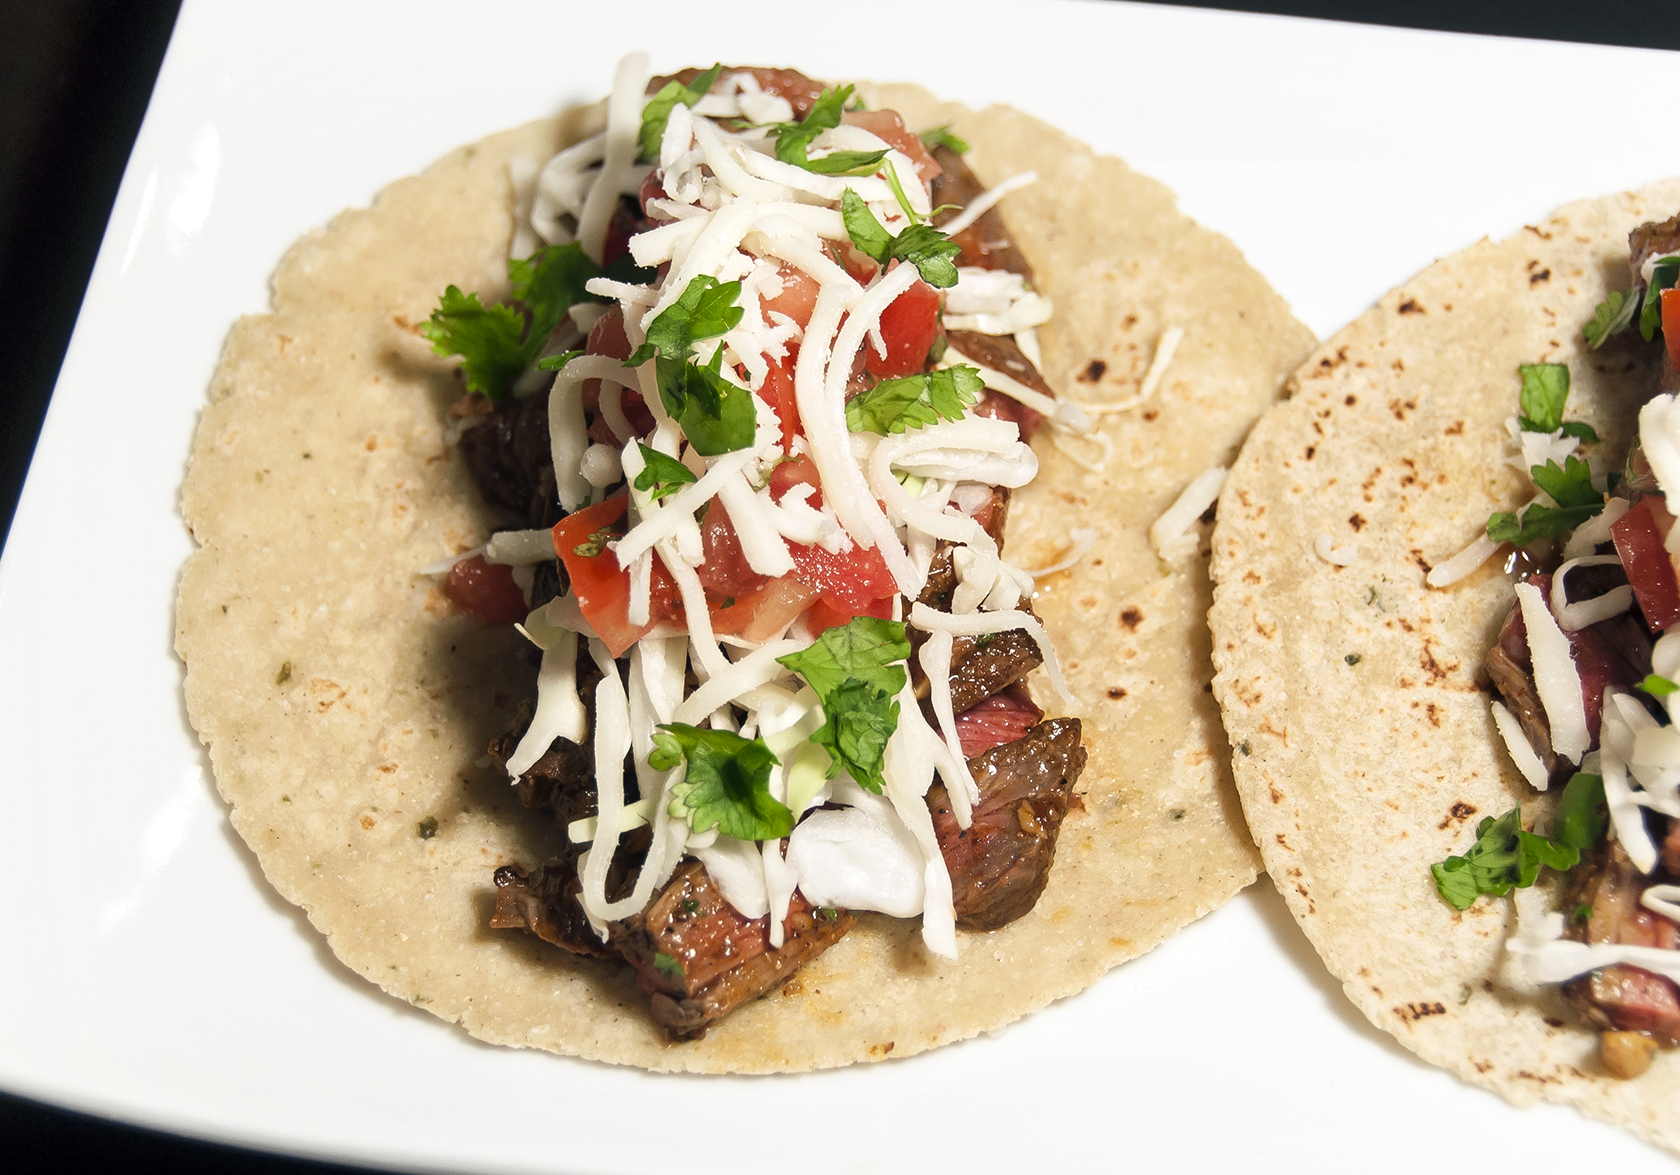 Published August 27, 2013 at 1680 × 1175 in Skirt Steak Tacos